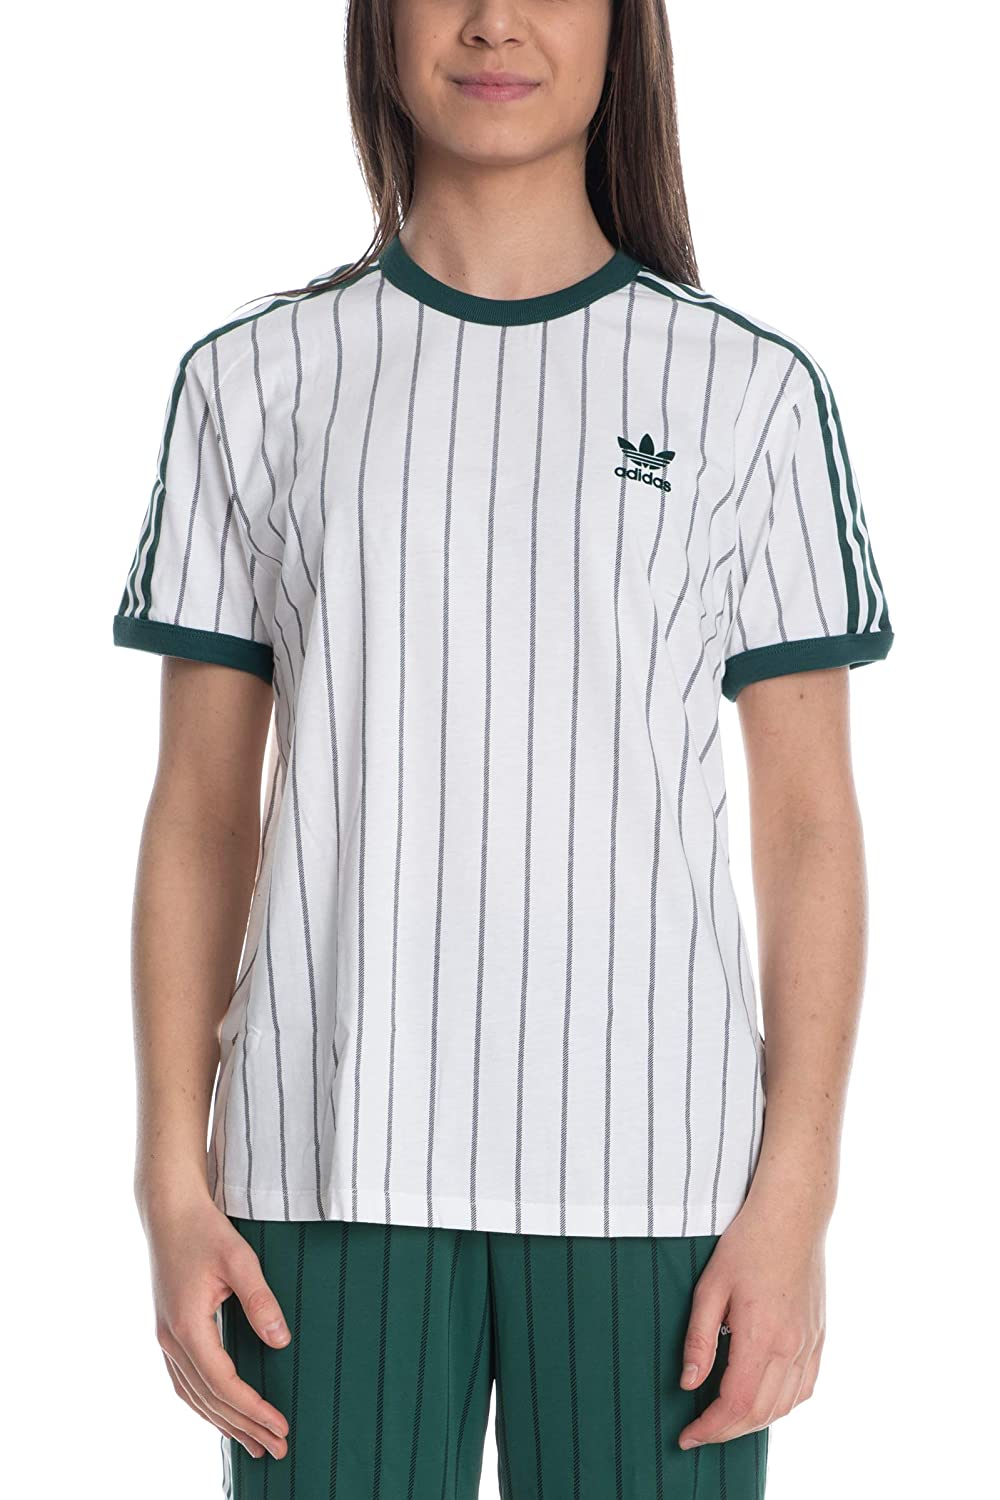 Details about adidas Originals Womens Boyfriend Tee White Striped Active Wear DU9931